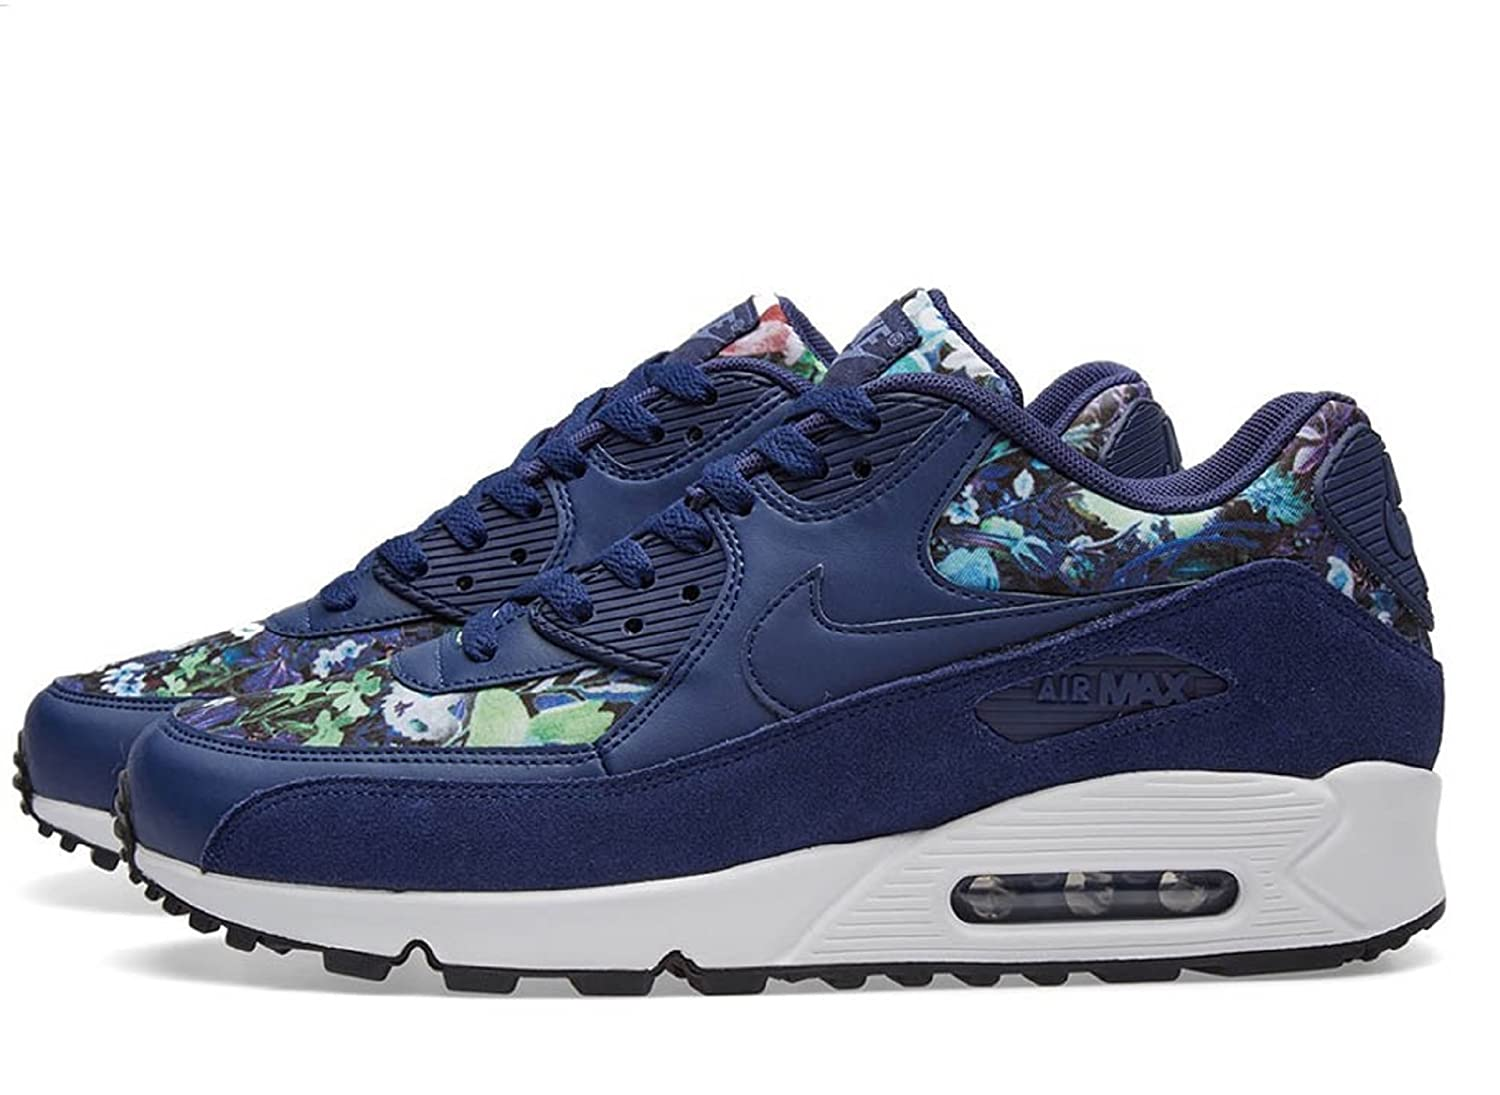 NIKE Air Max 90 SE Womens Running Shoes B06W57SBRV 6 B(M) US|Blue/Floral Blue Multi